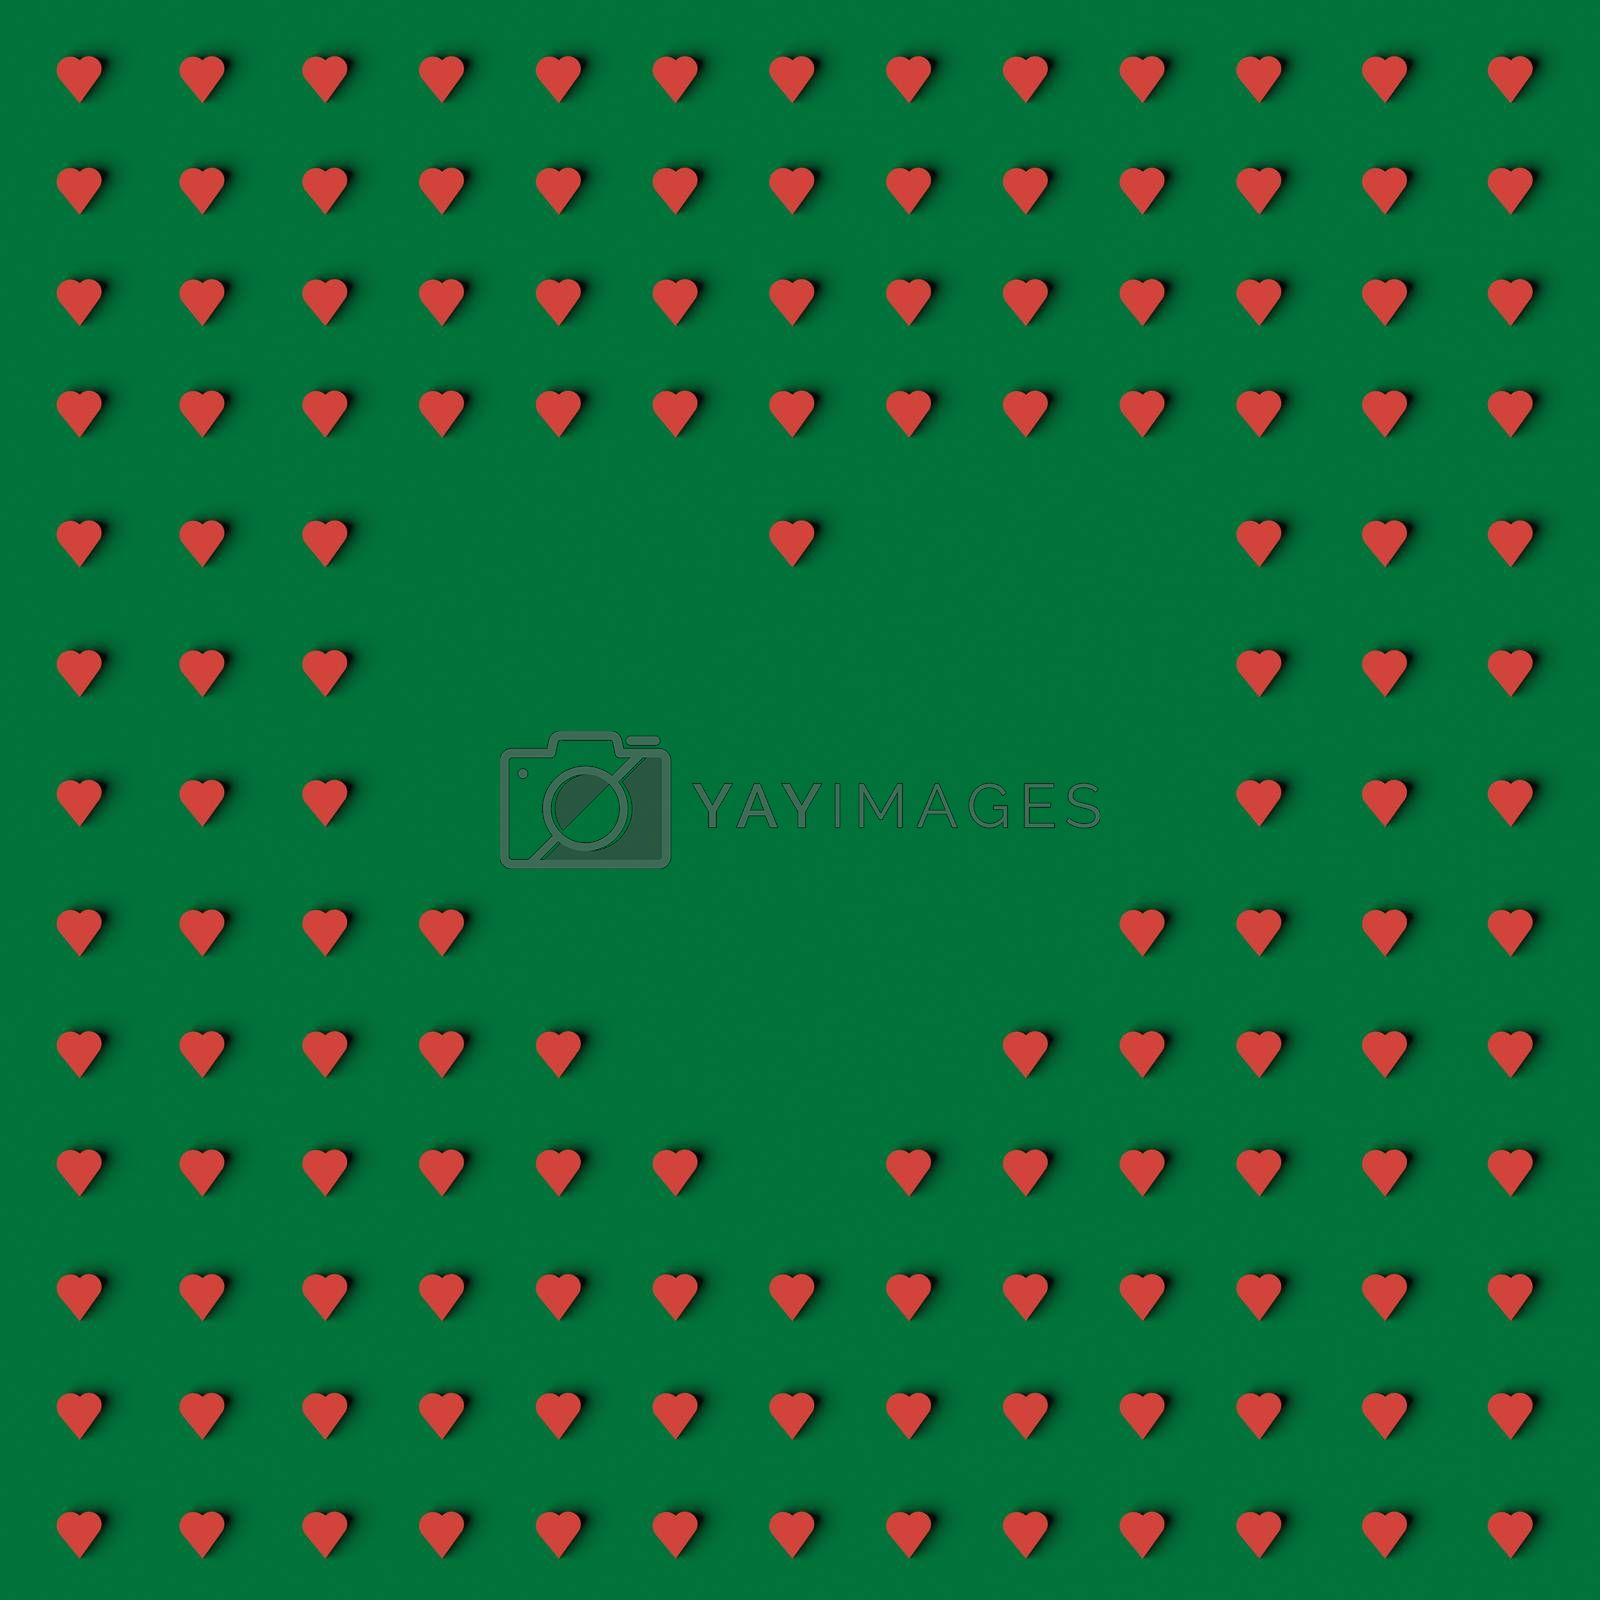 3D RENDERING OF HEART SHAPE FRAME MADE WITH SMALL HEARTS